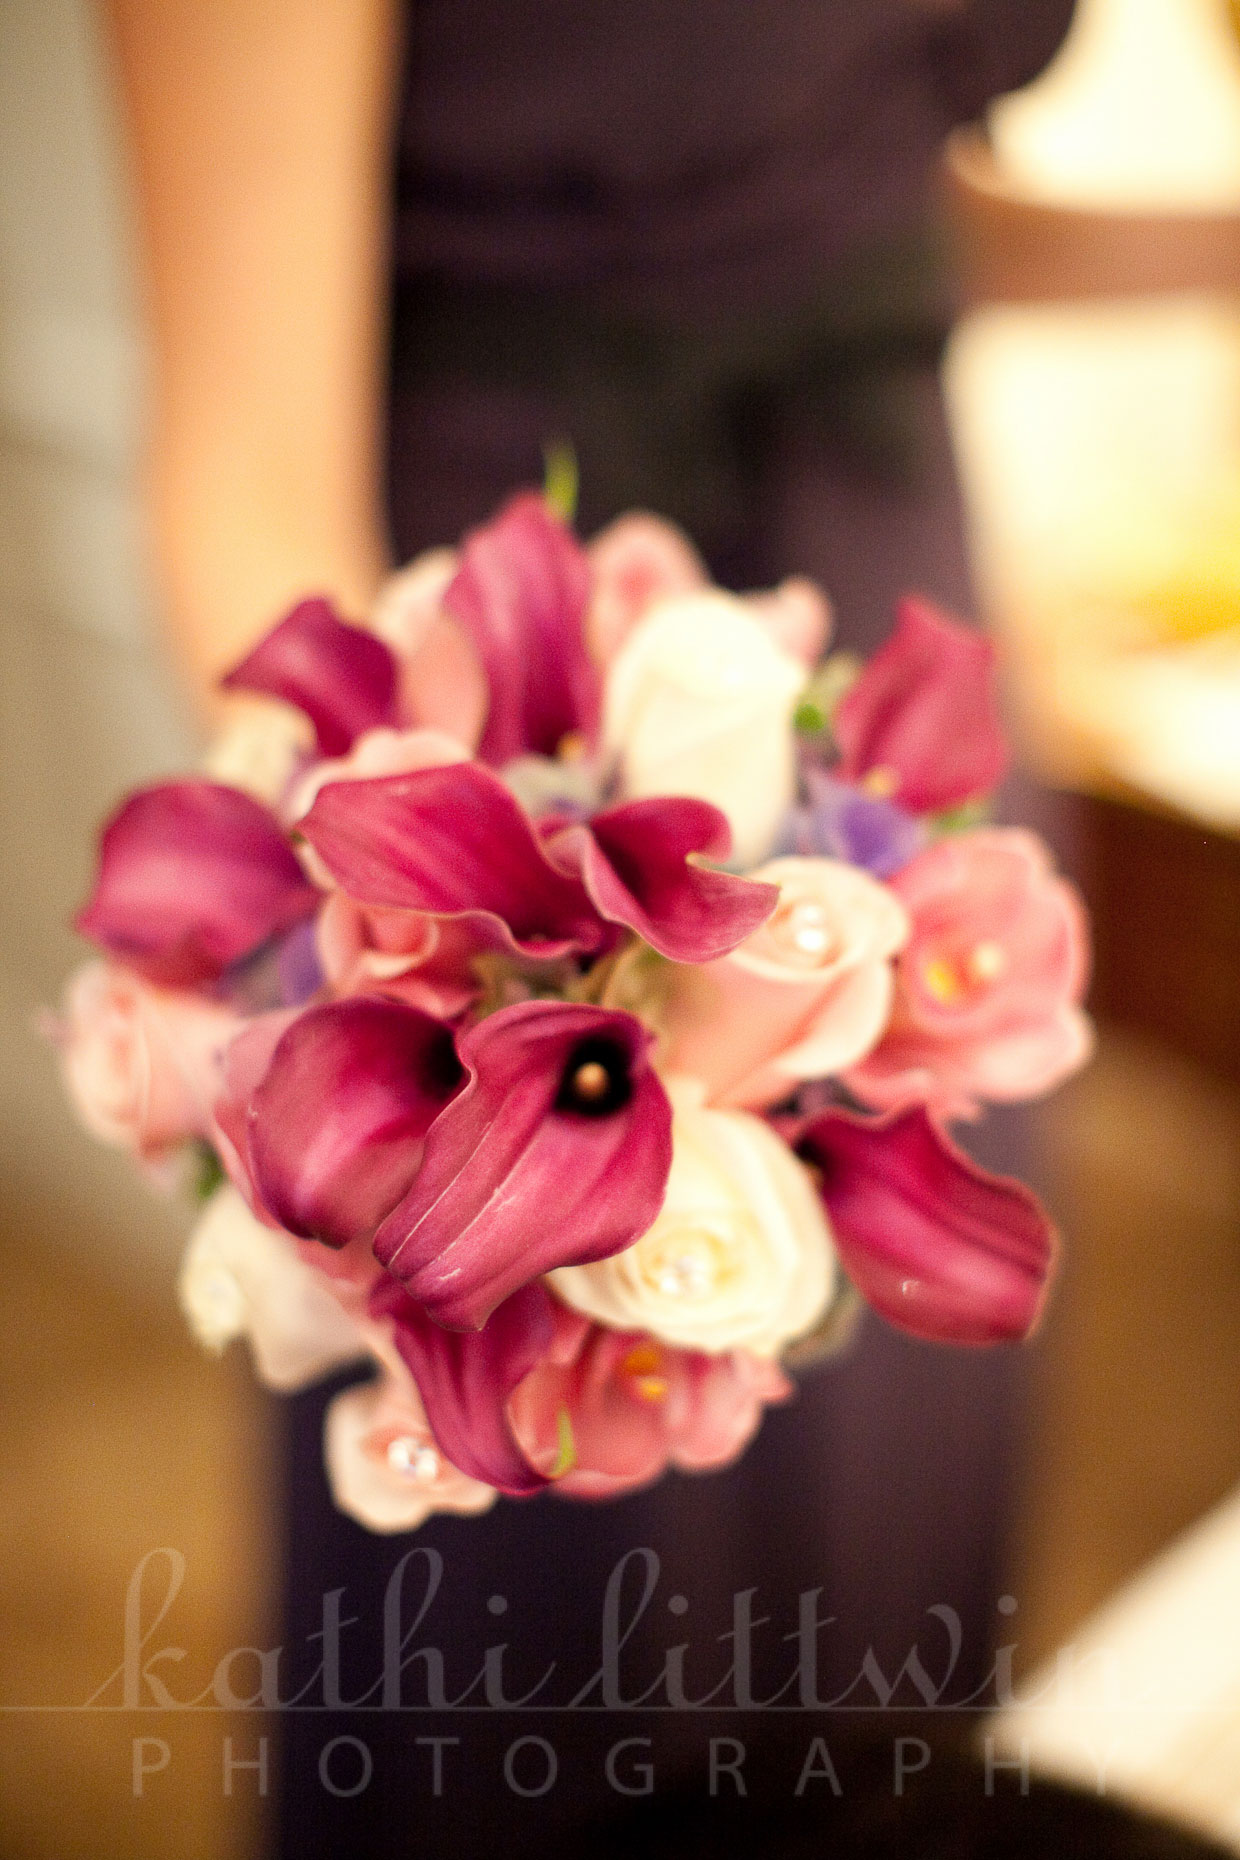 Kathi_Littwin_Photography_Plaza_NYC_Wedding-2013